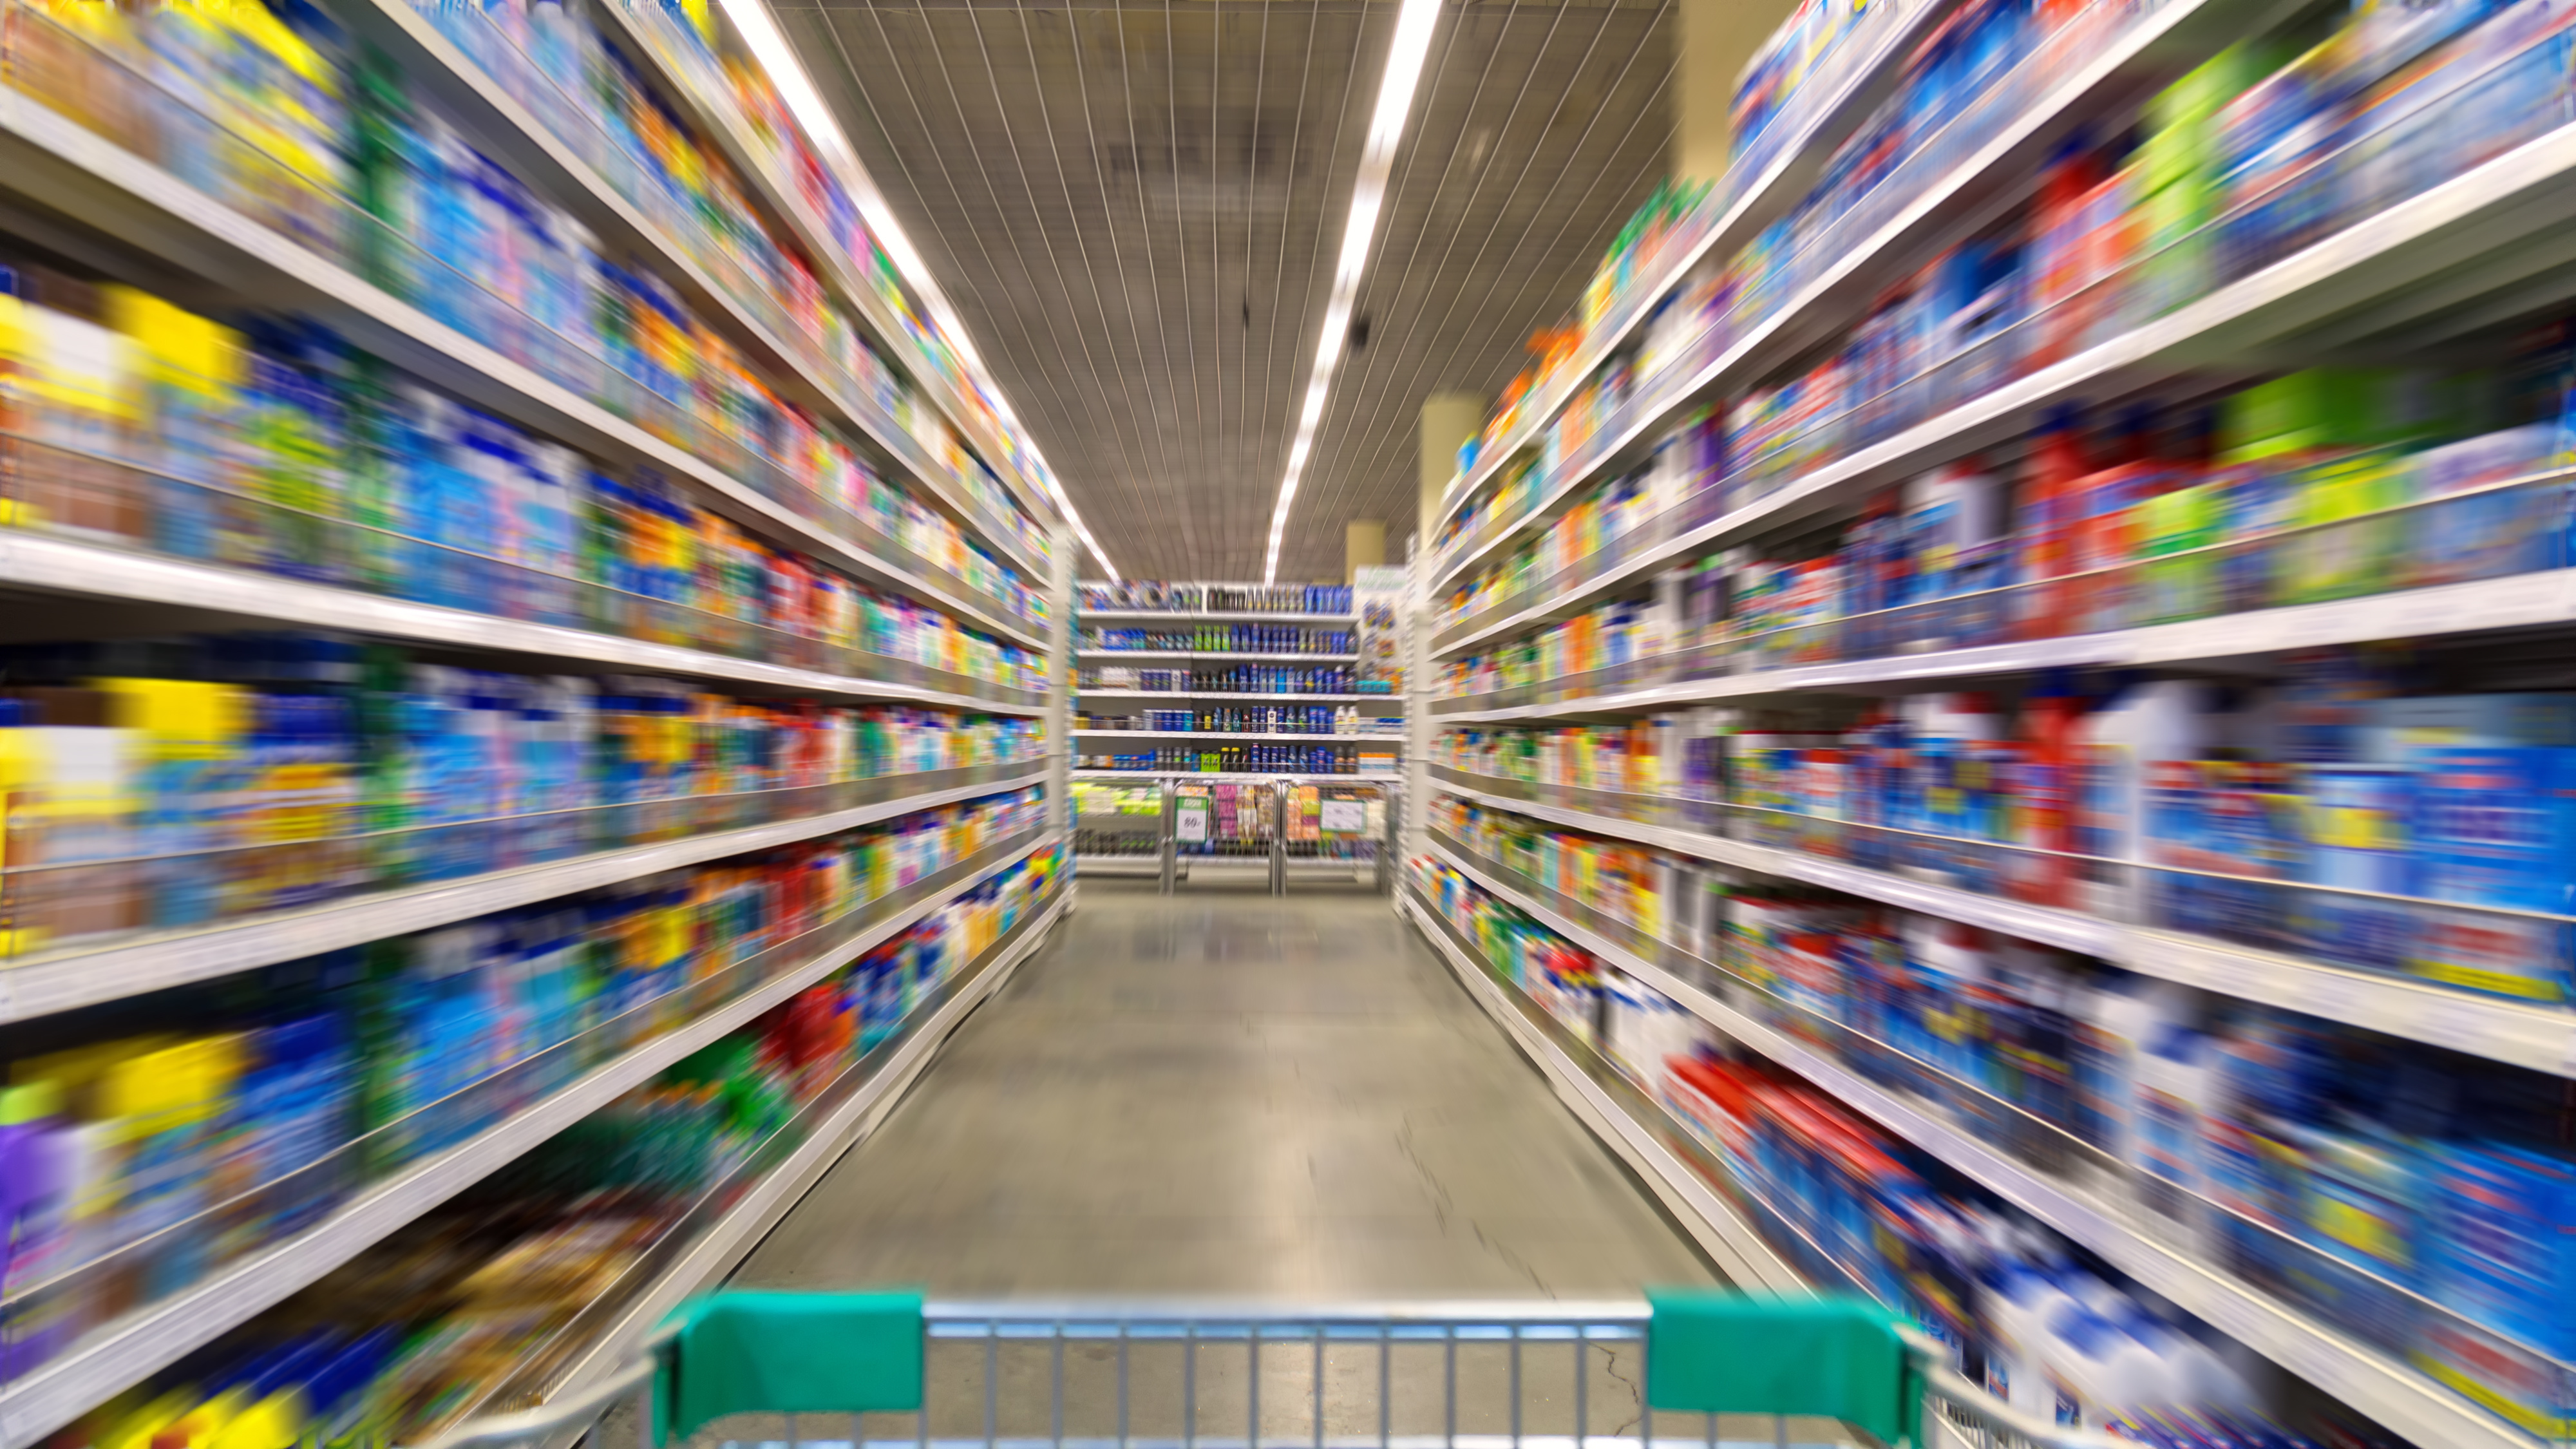 Shopping Cart View on a Supermarket Aisle and Shelves – Image Has a Shallow Depth of Field